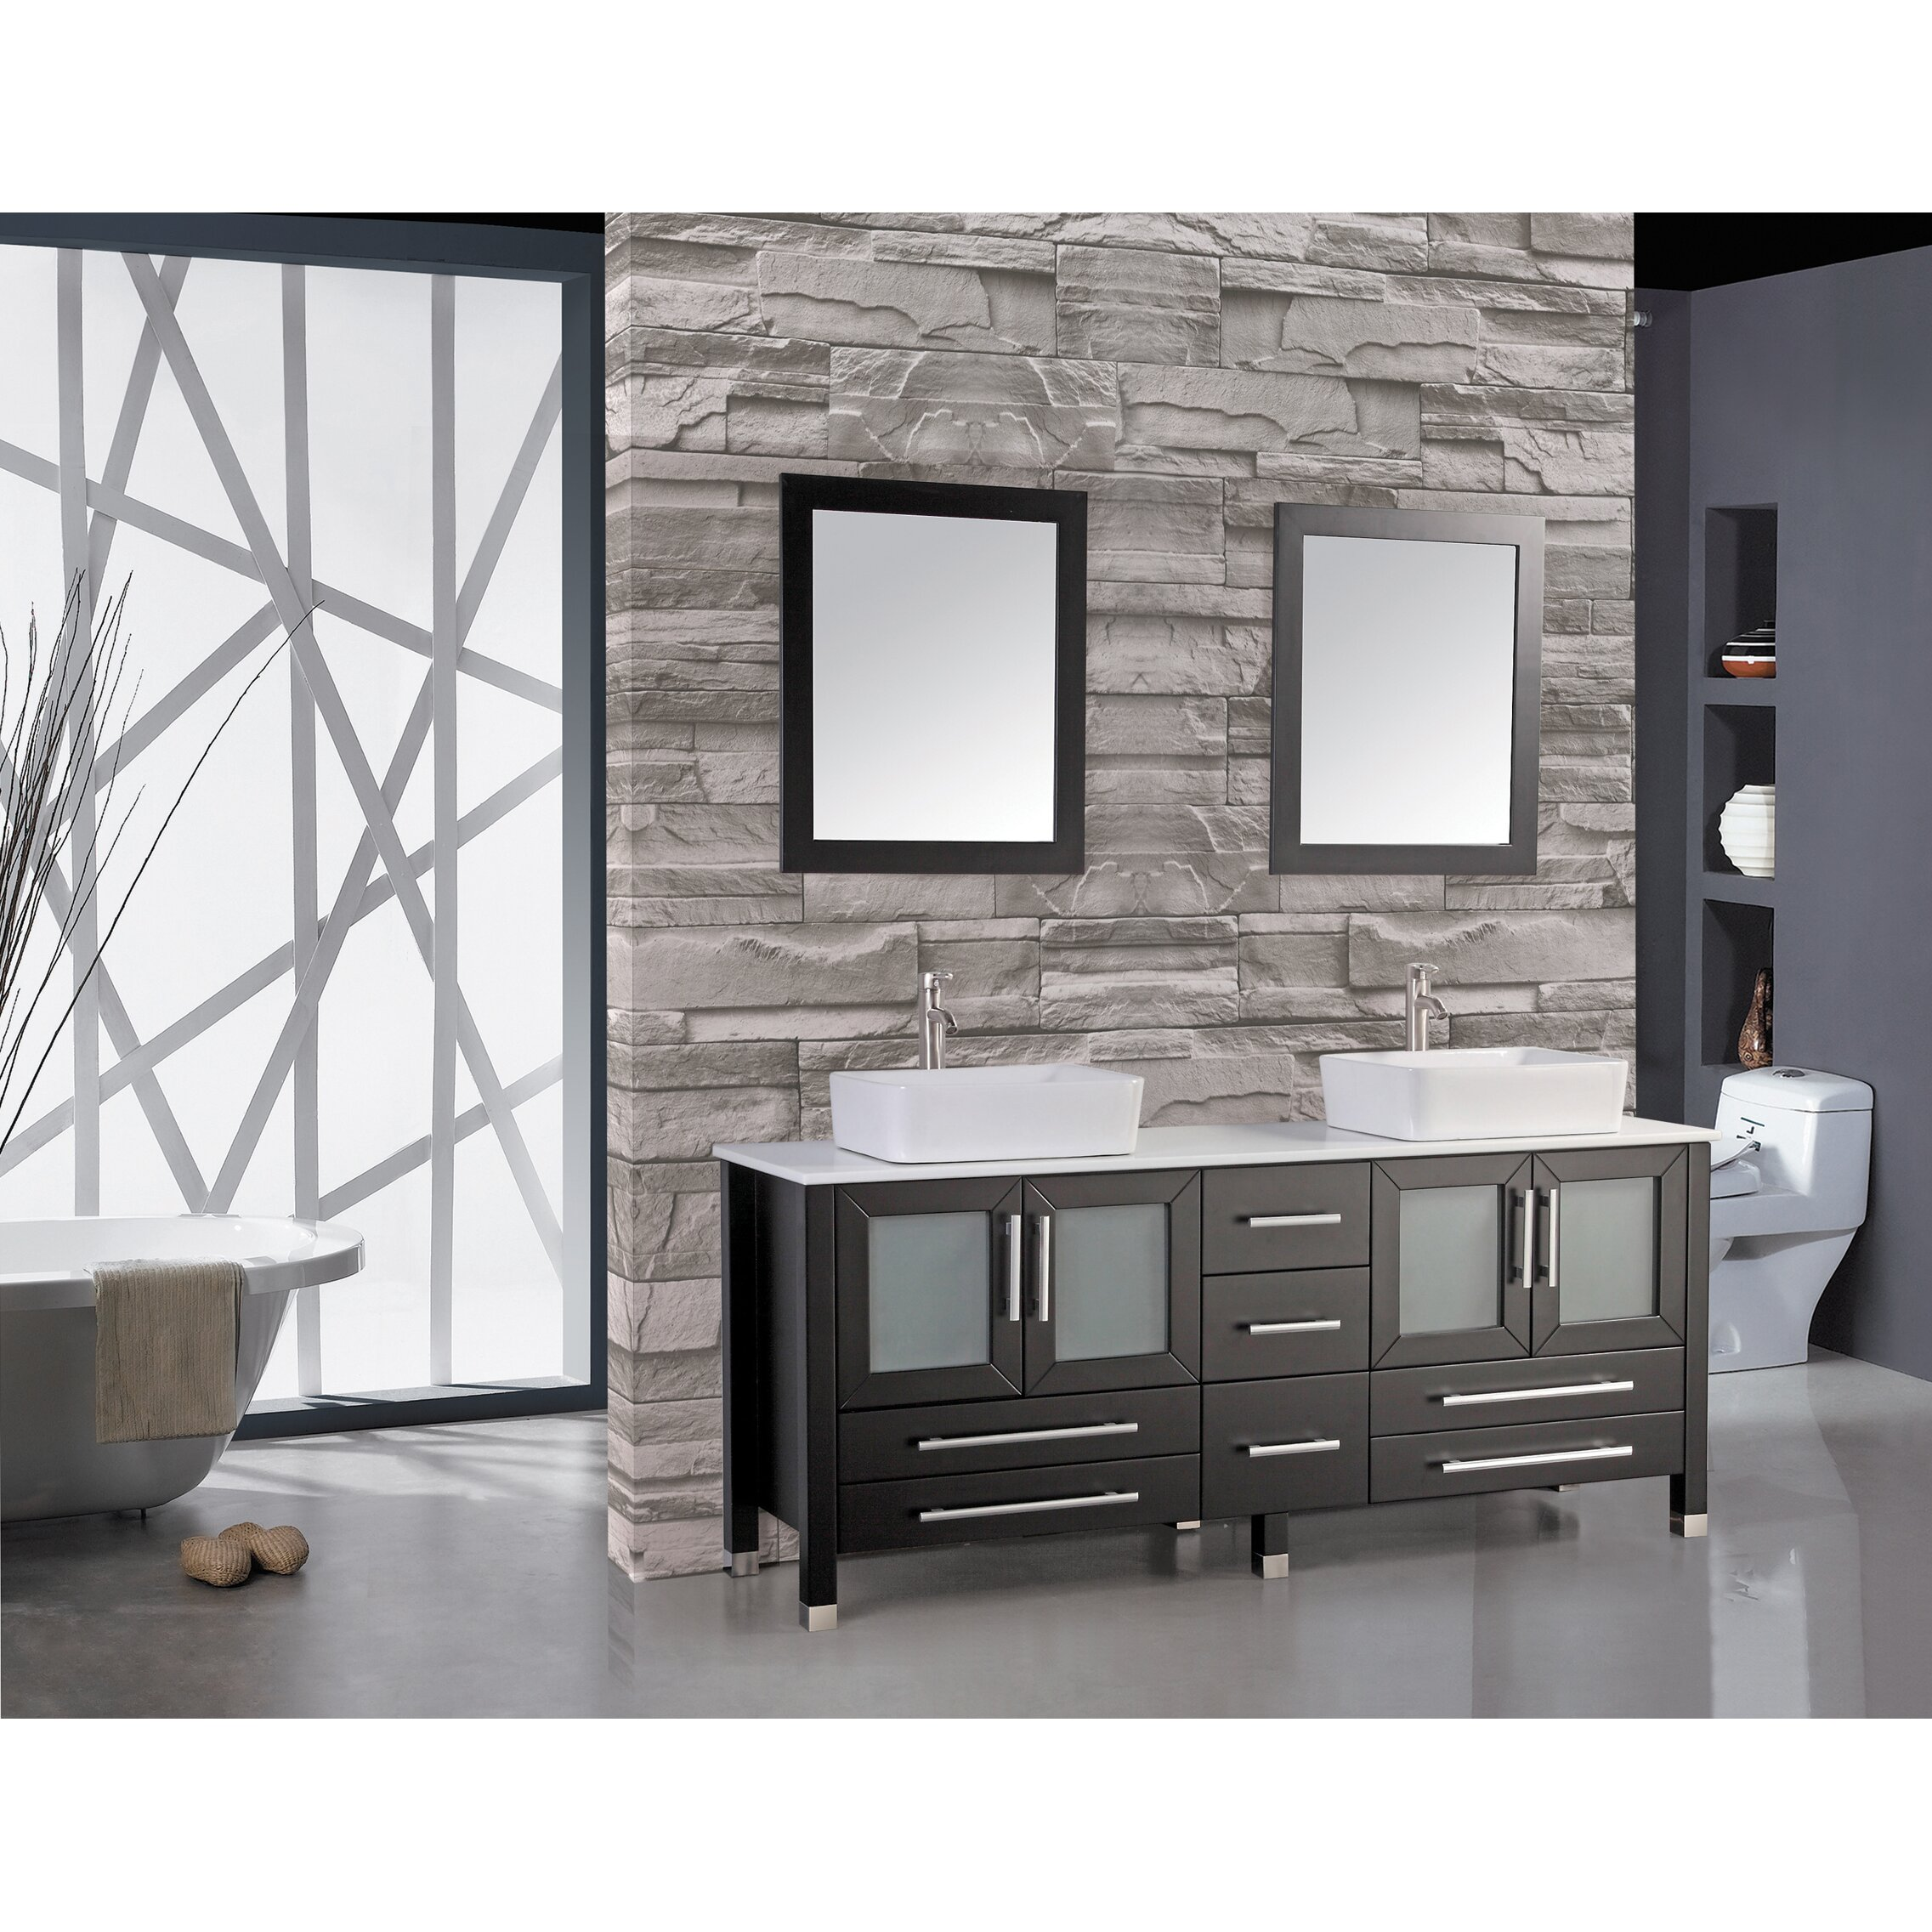 Creative Buy Roper Rhodes Beat Illuminated Led Bathroom Mirror With Integrated